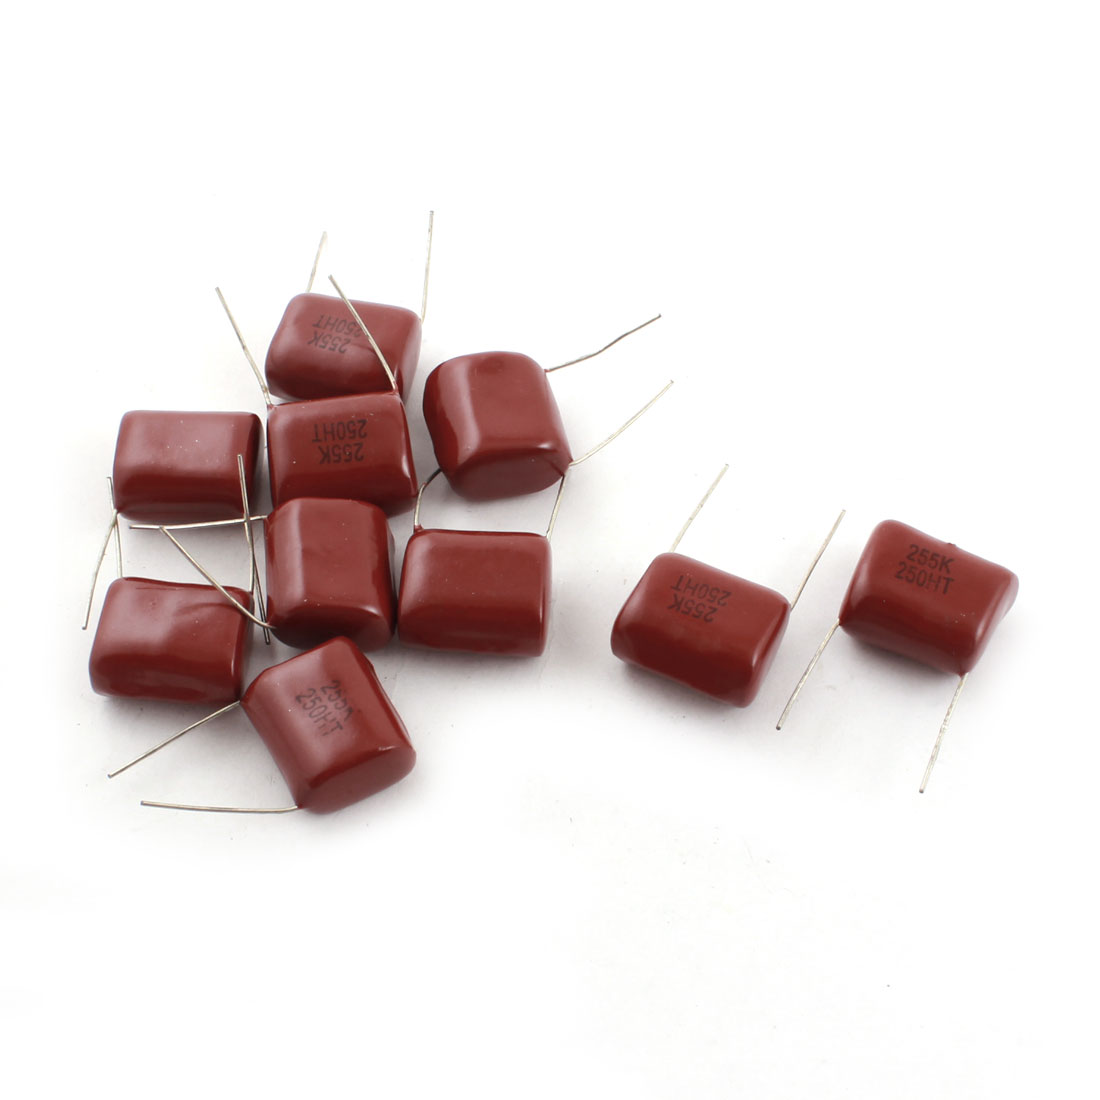 250V 255PF 2.5F Radial Lead Through Hole Mount Rectangle Metallized Polyester Film Capacitor 10 Pcs